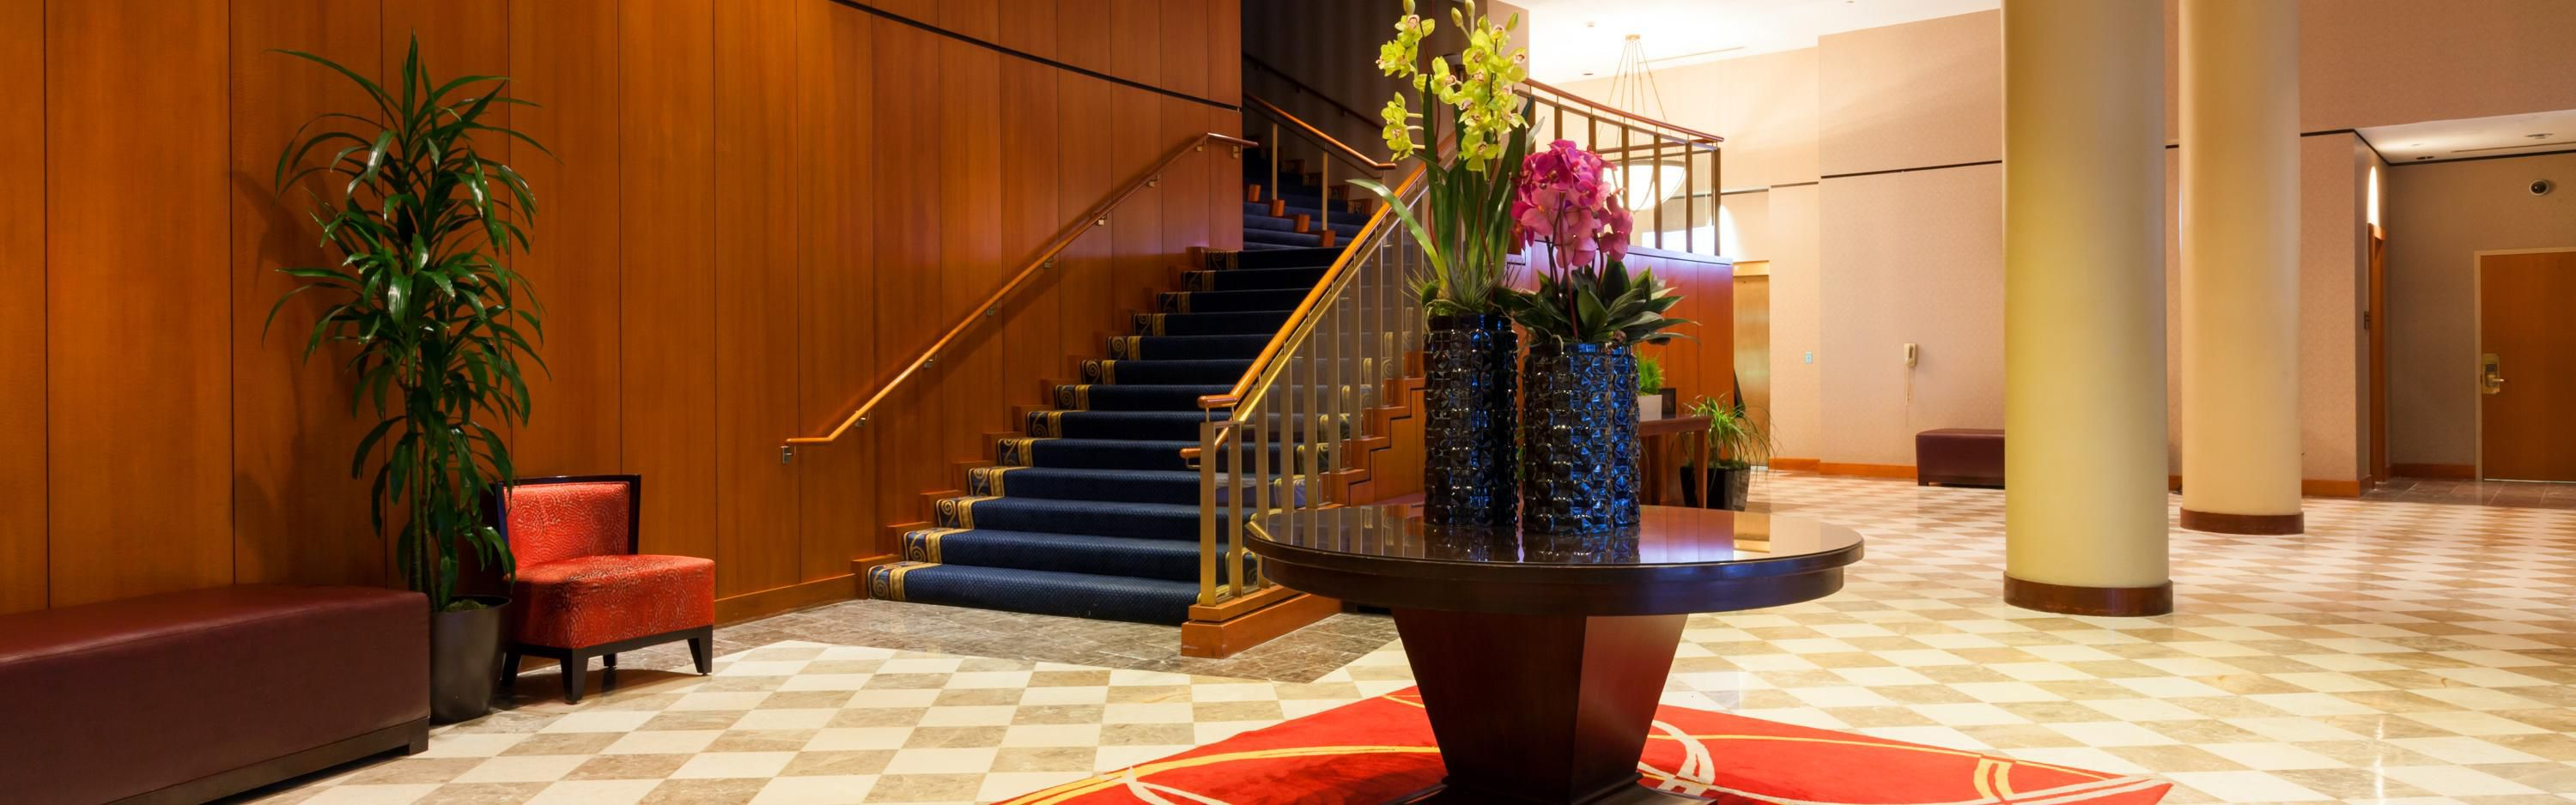 Crowne Plaza Cleveland at Playhouse Square image 5